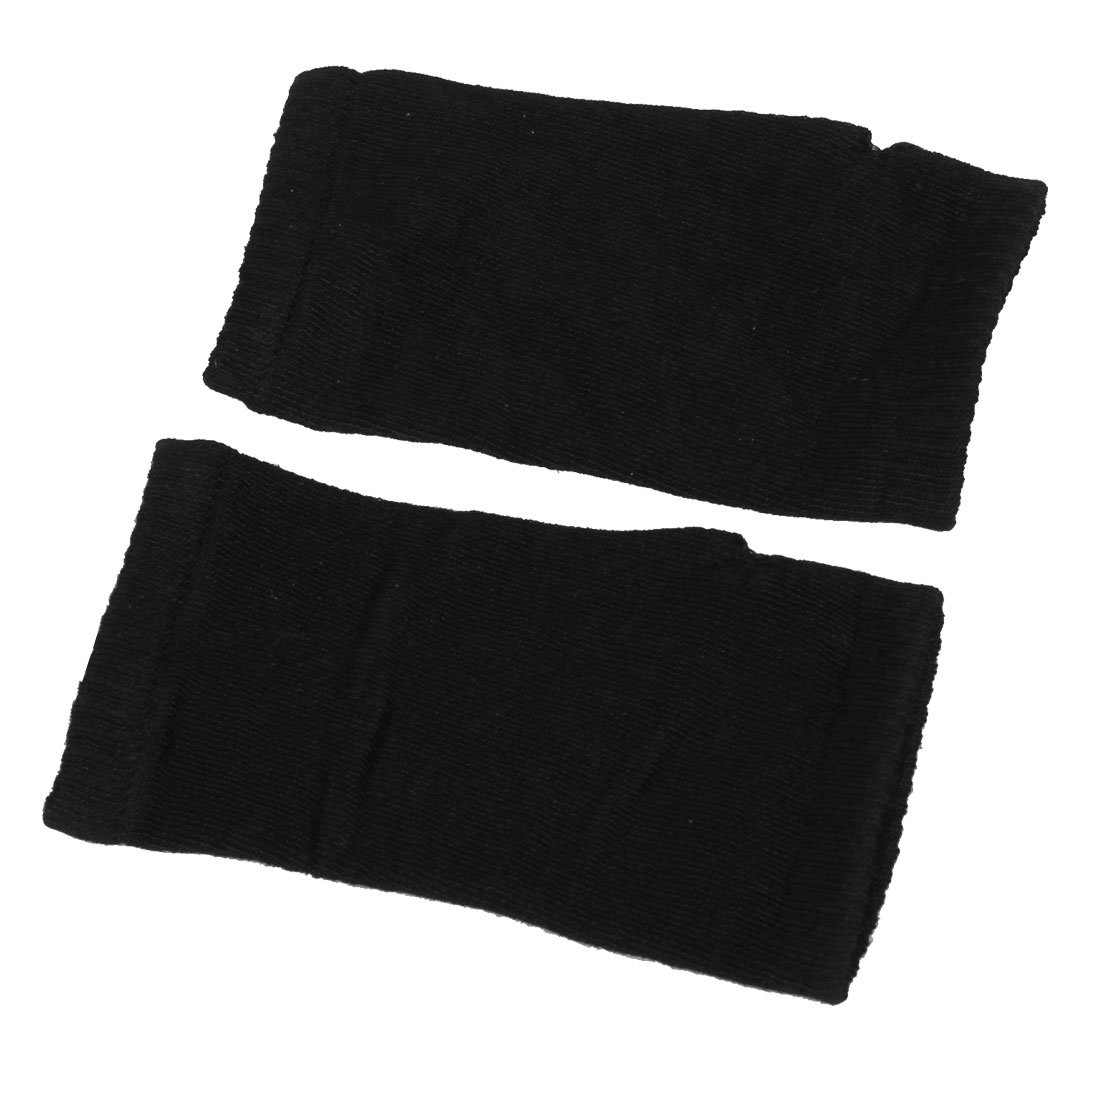 Woman Stretchy Cuff Thumbhole Fingerless Black Acrylic Gloves Pair